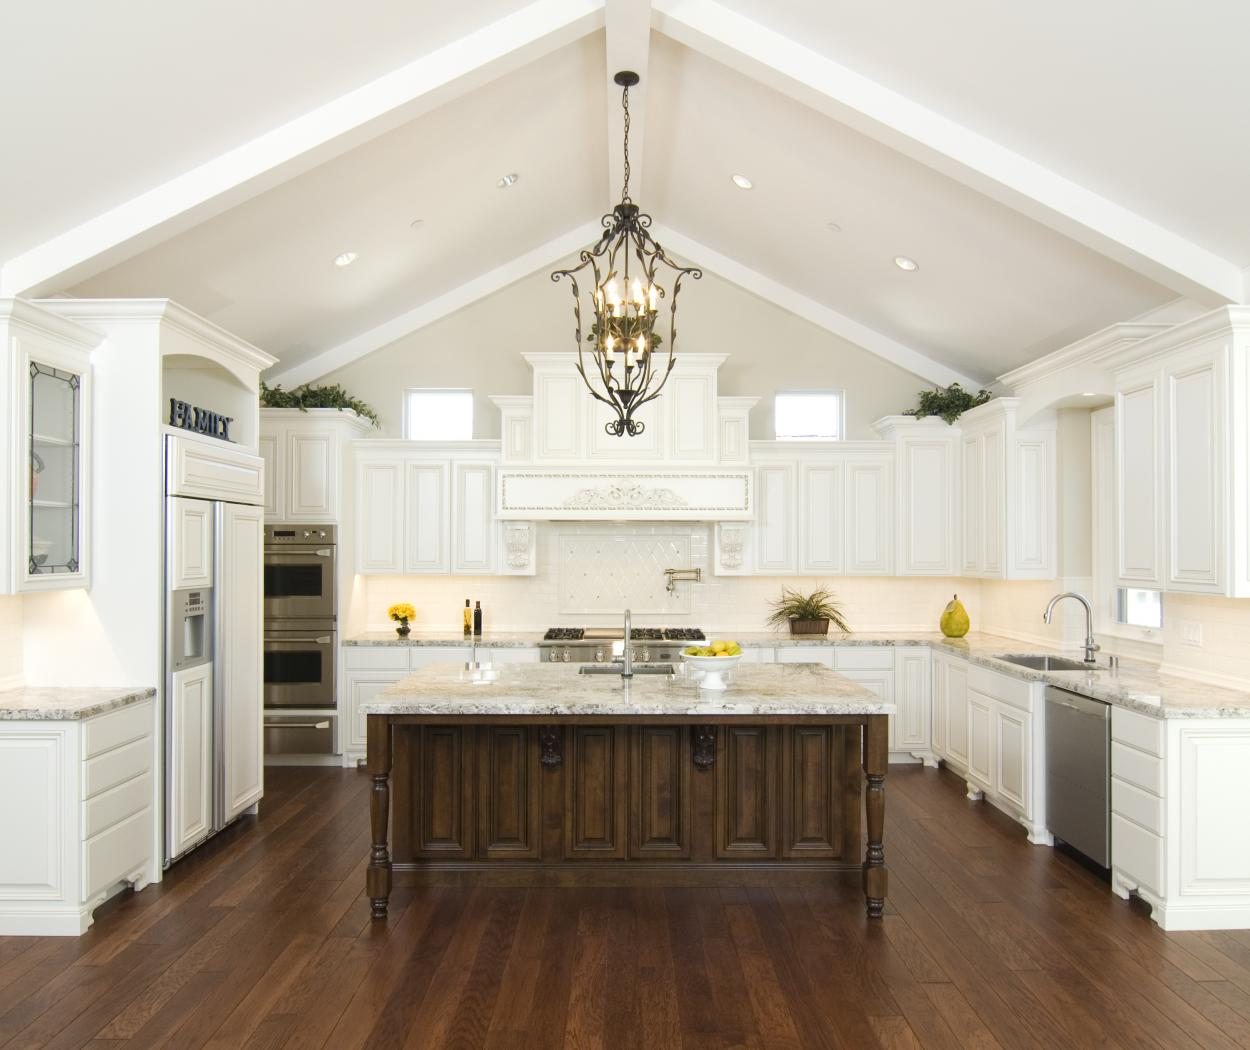 Traditional White Kitchen with a Chocolate Stained Island, Beautiful Marble Countertops and Stainless Steel Appliances